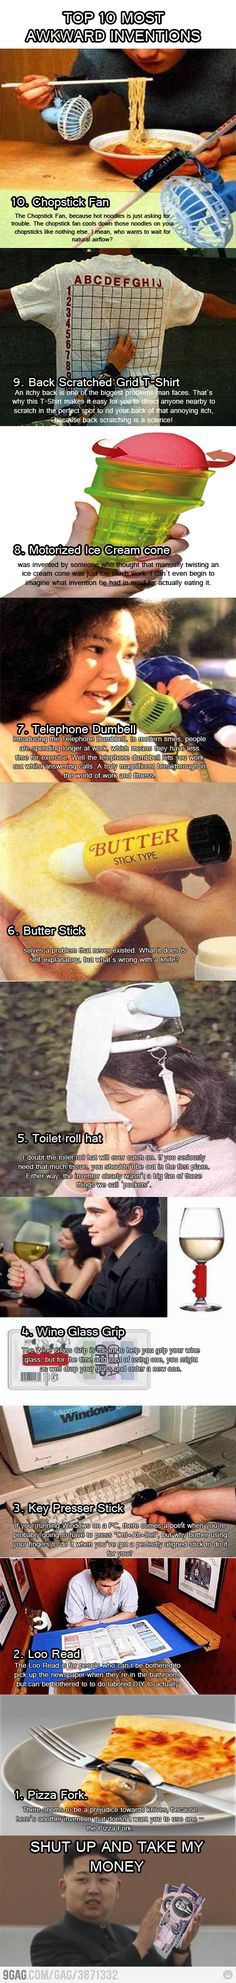 Top 10 most awkward inventions. I kind of want the toilet paper hat. I think Close Close Sassano needs the pizza fork. Stupid Inventions, Awesome Inventions, Creative Inventions, Jamel, Meme Center, Humor, Just For Laughs, Cool Stuff, Funny Stuff